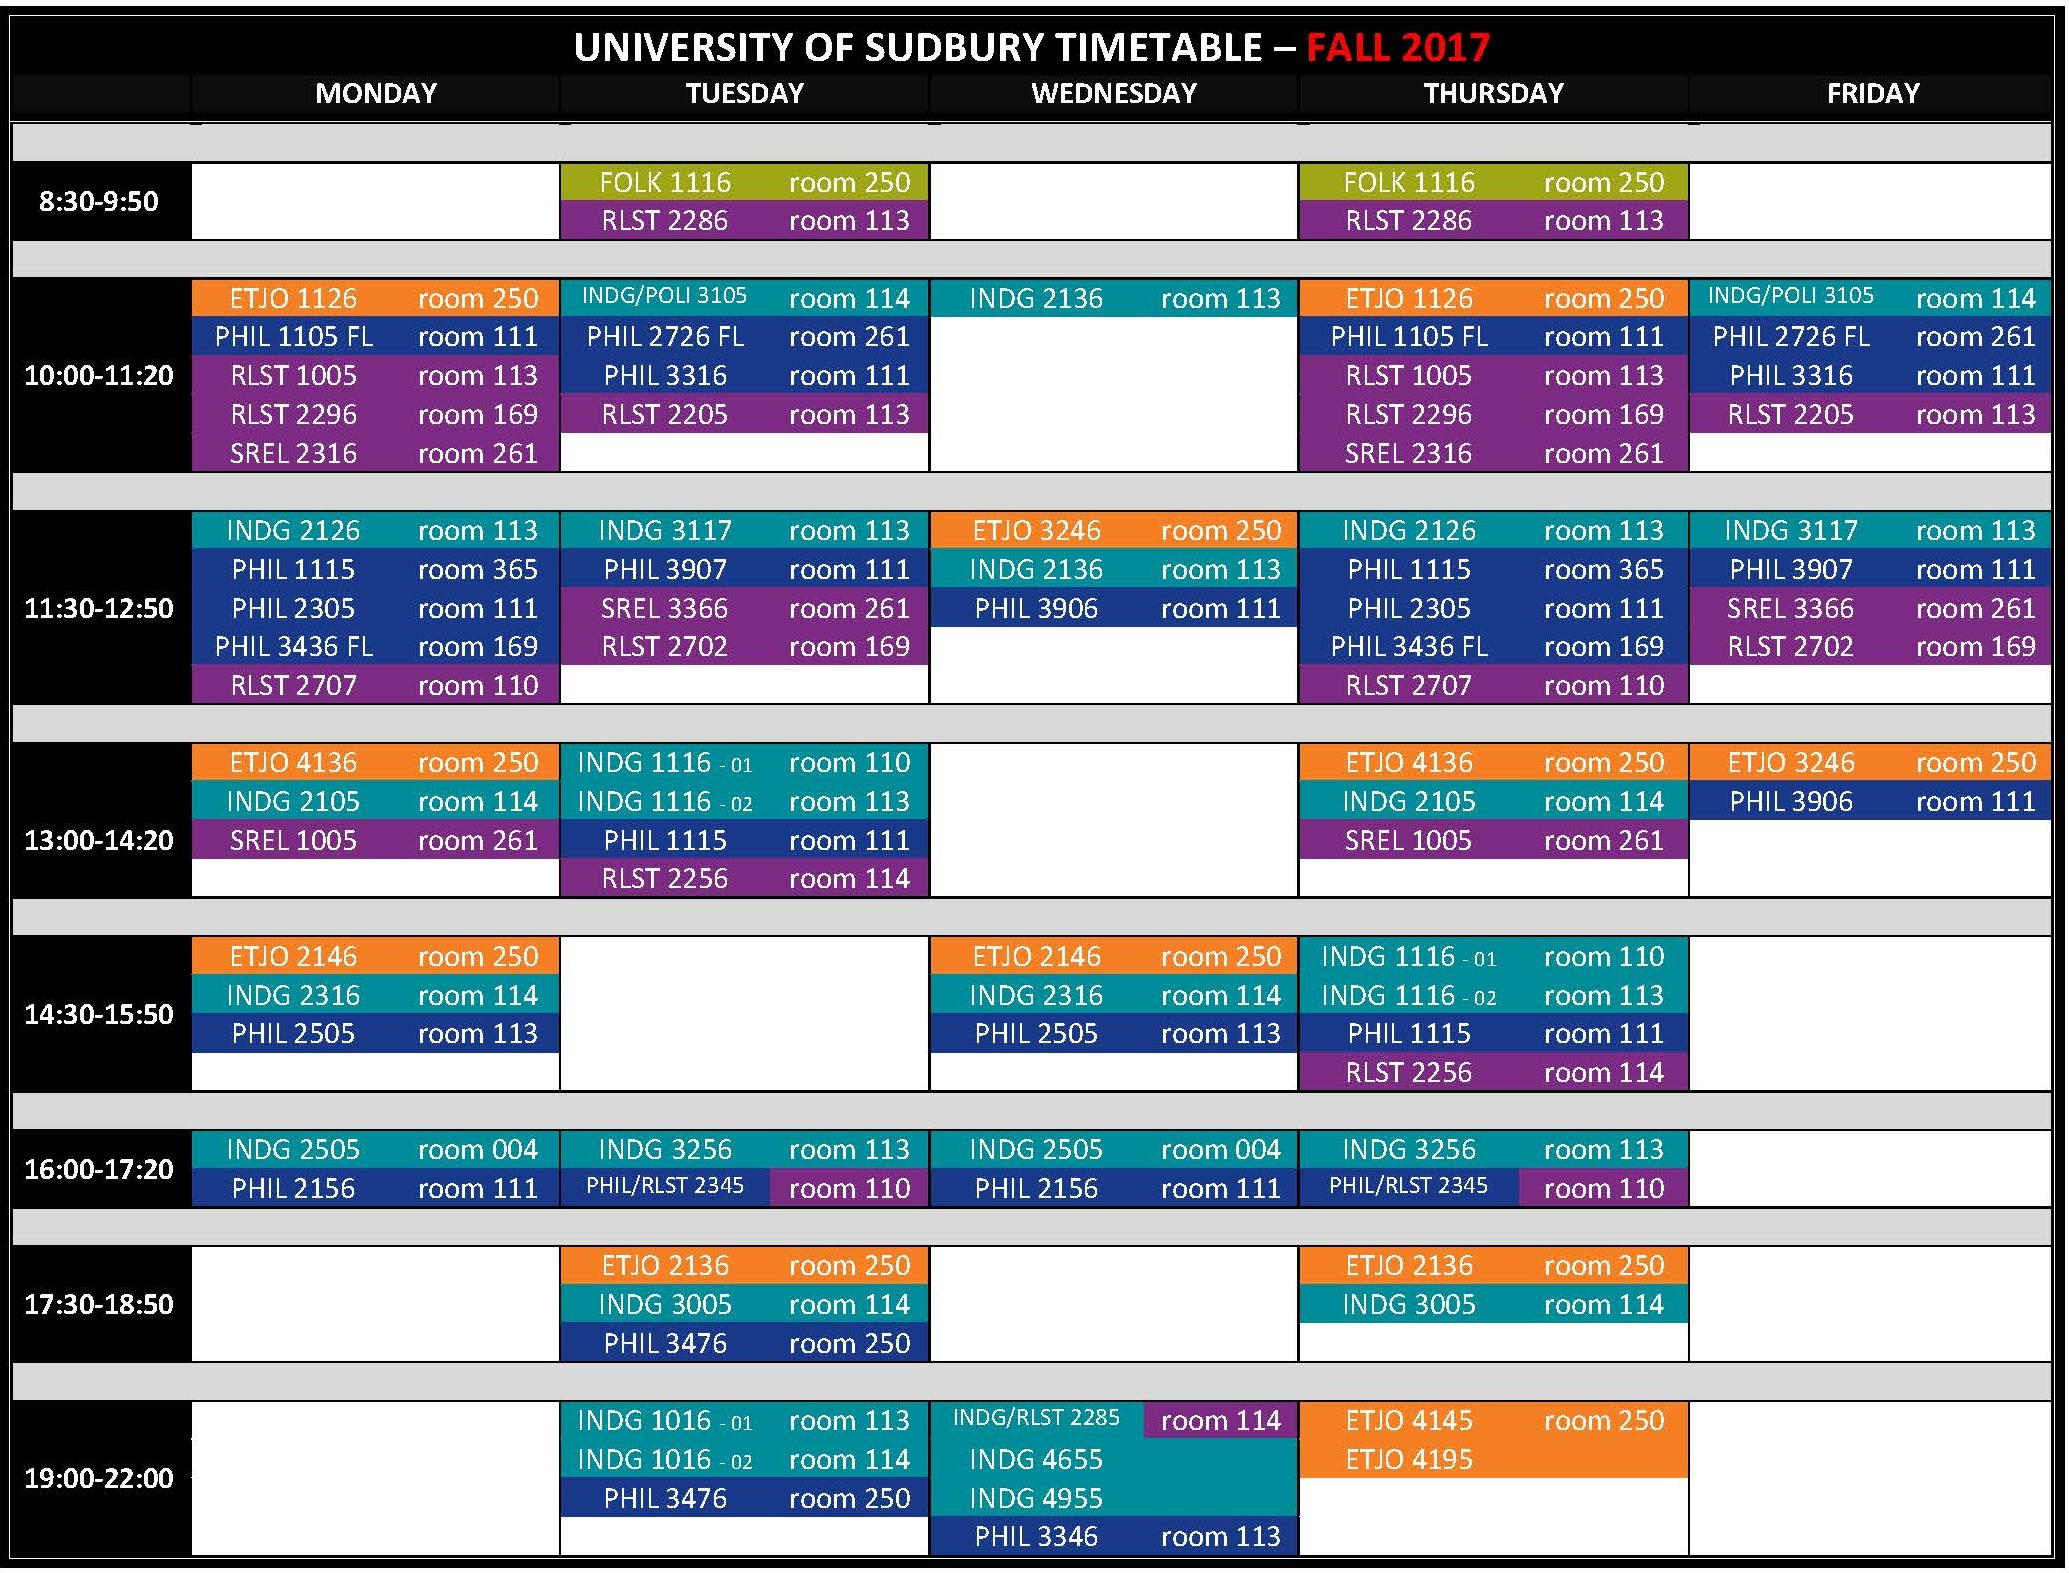 UNIVERSITY OF SUDBURY TIMETABLE 2017 2018 Fall 2017.4